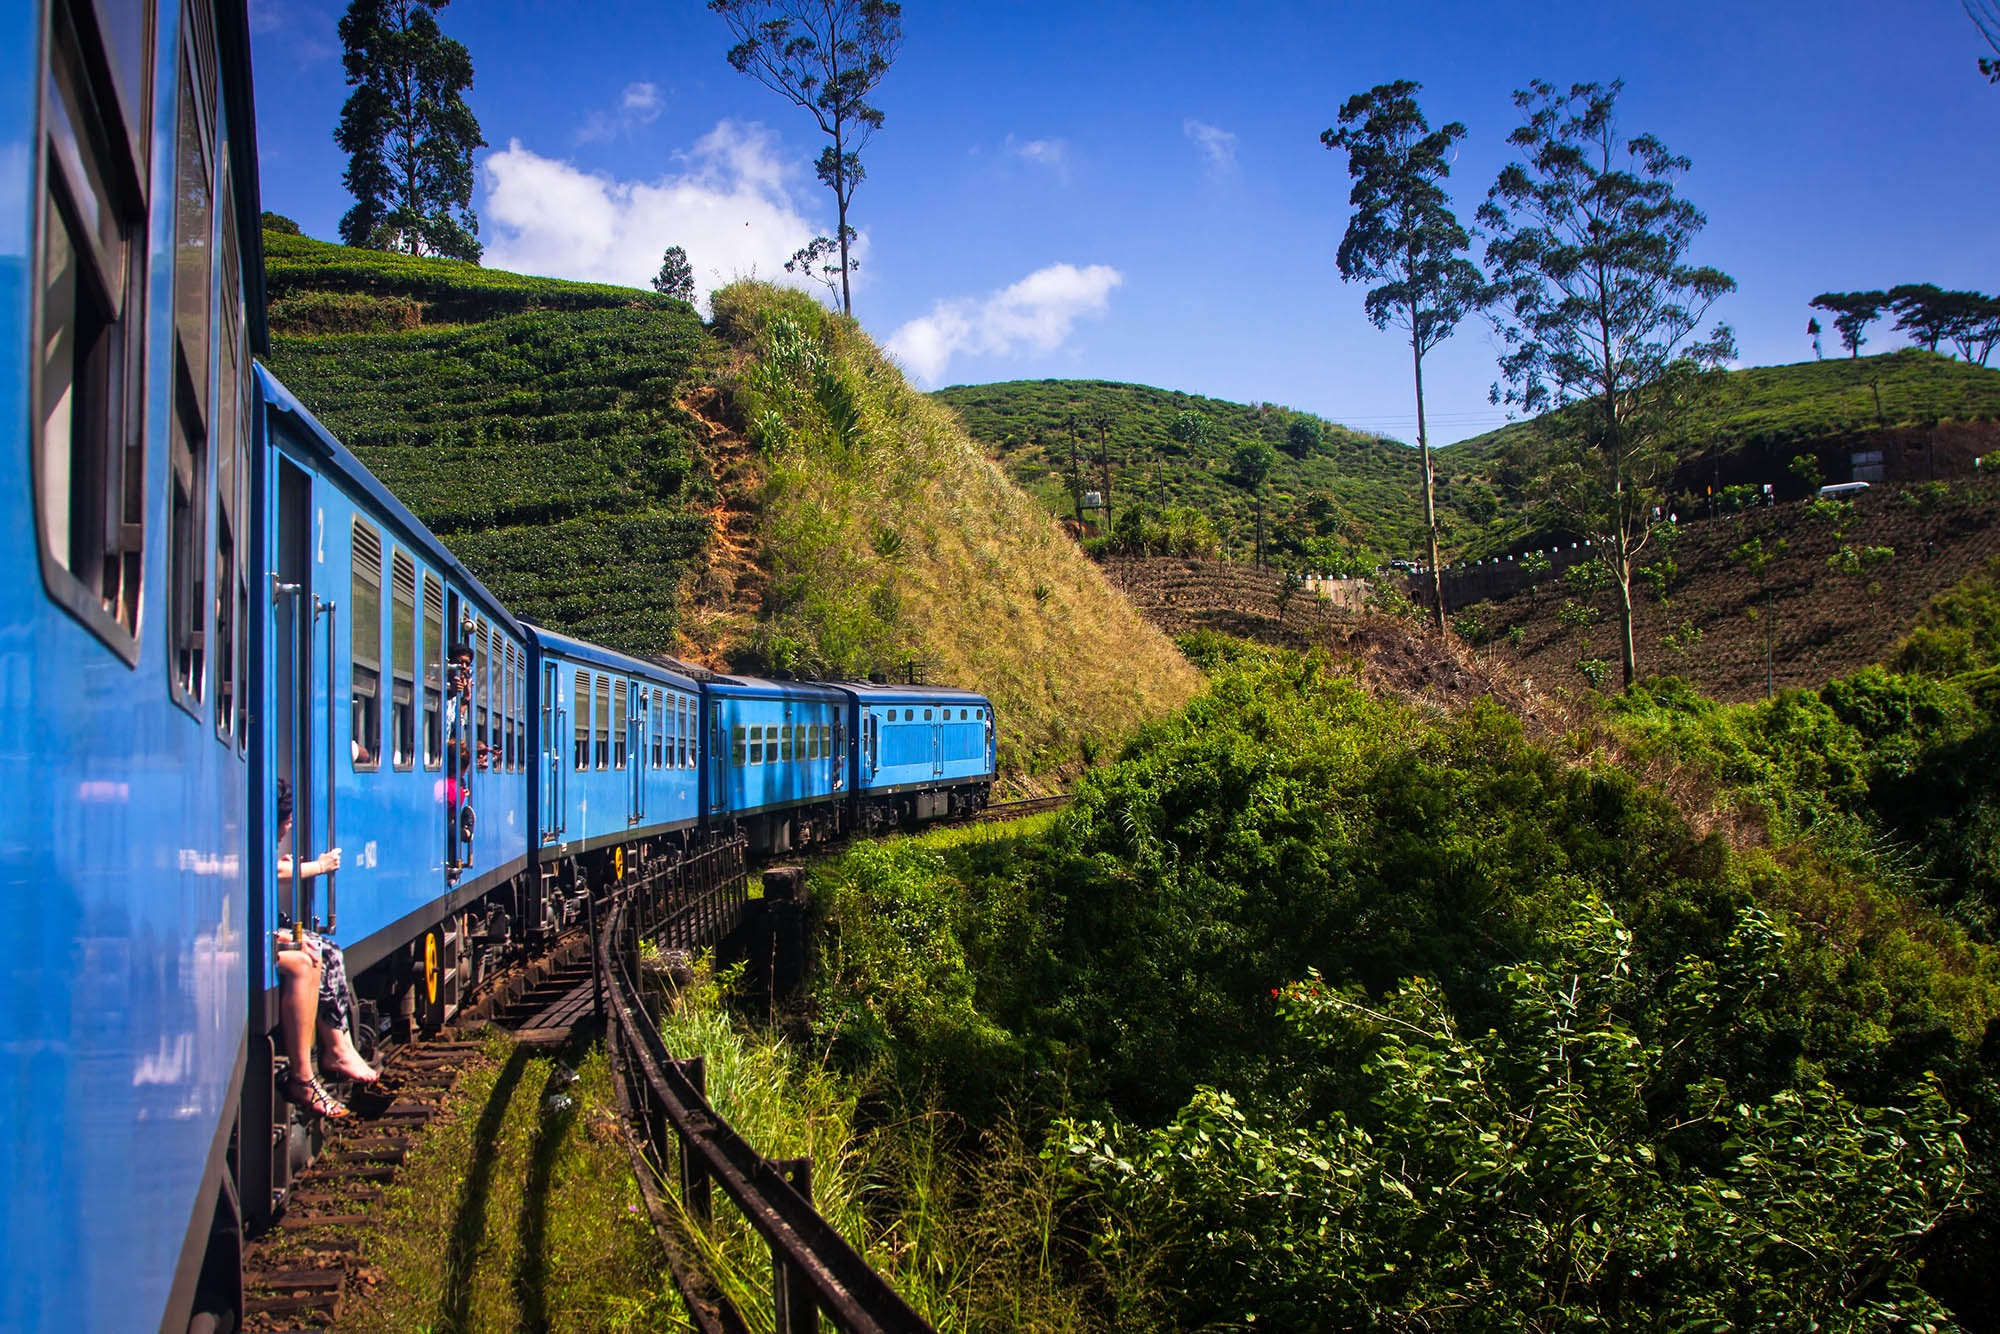 The most beautiful train ride in the world